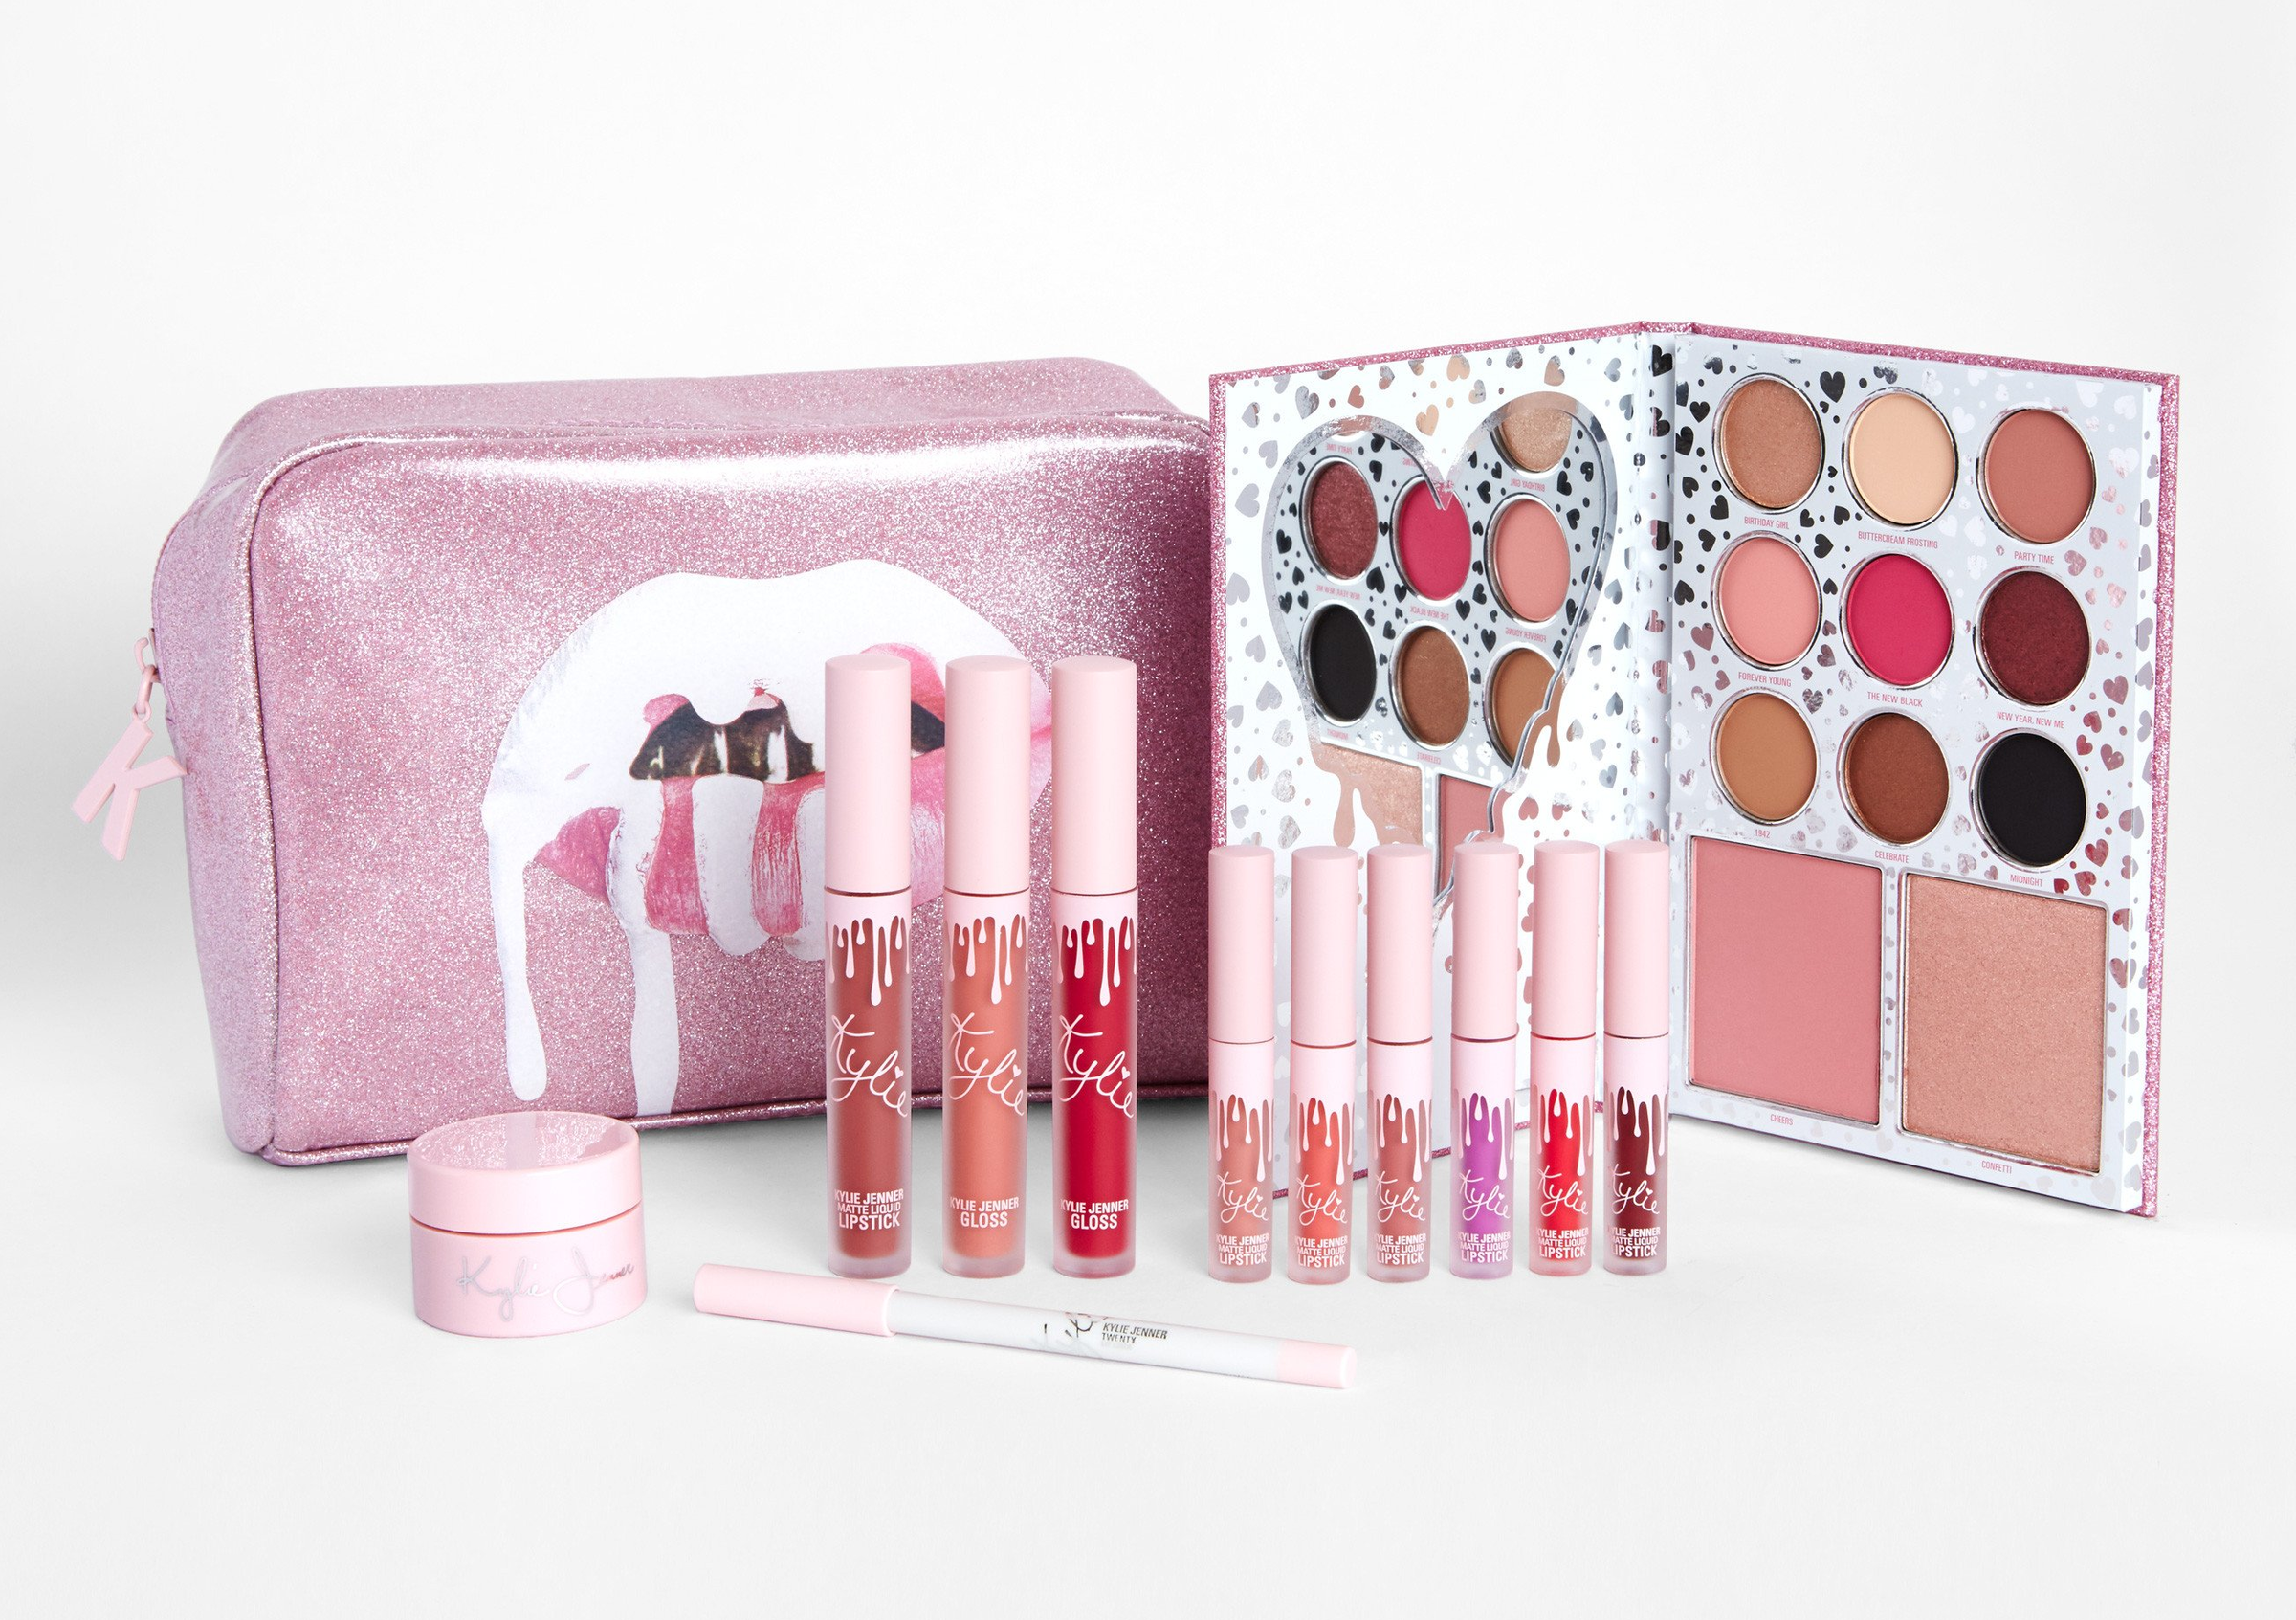 Kylie Cosmetics The Birthday Collection Makeup Bag Beautyspot Malaysia S Health Beauty Online Store